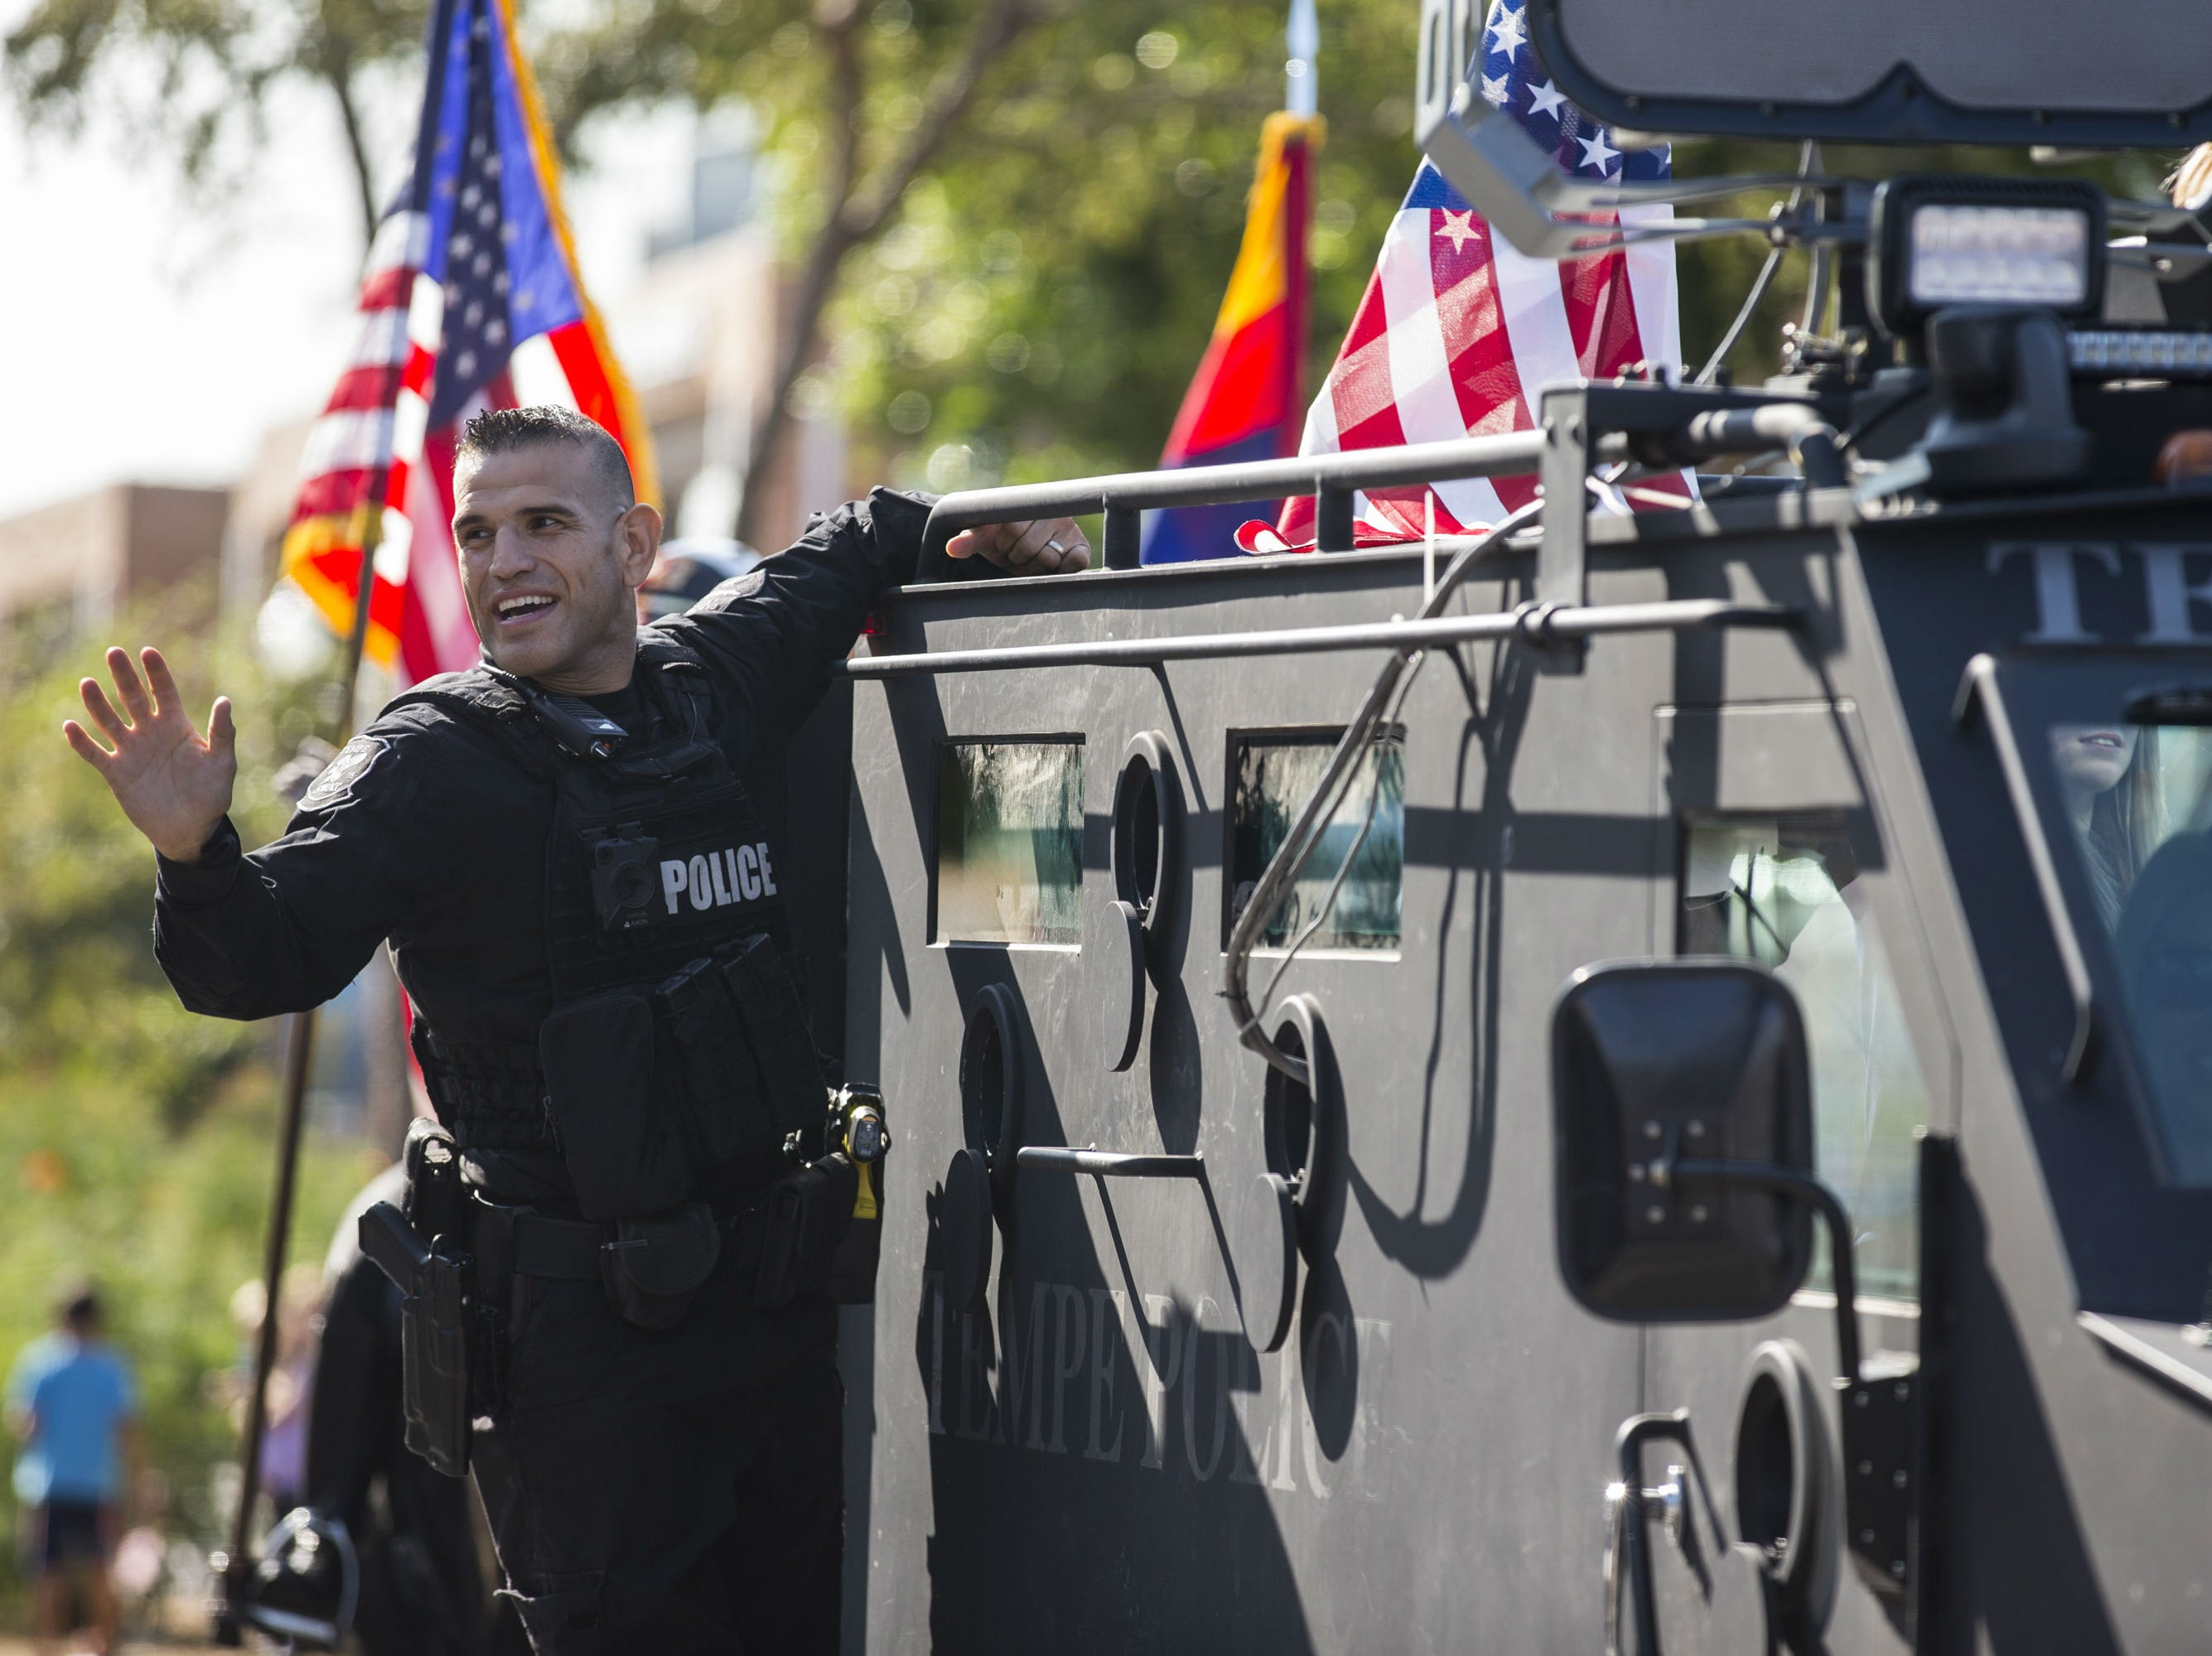 A Tempe Police Department officer waves to the crowd during the Veterans Day Parade on Nov. 11,  2018, in Tempe, Ariz.